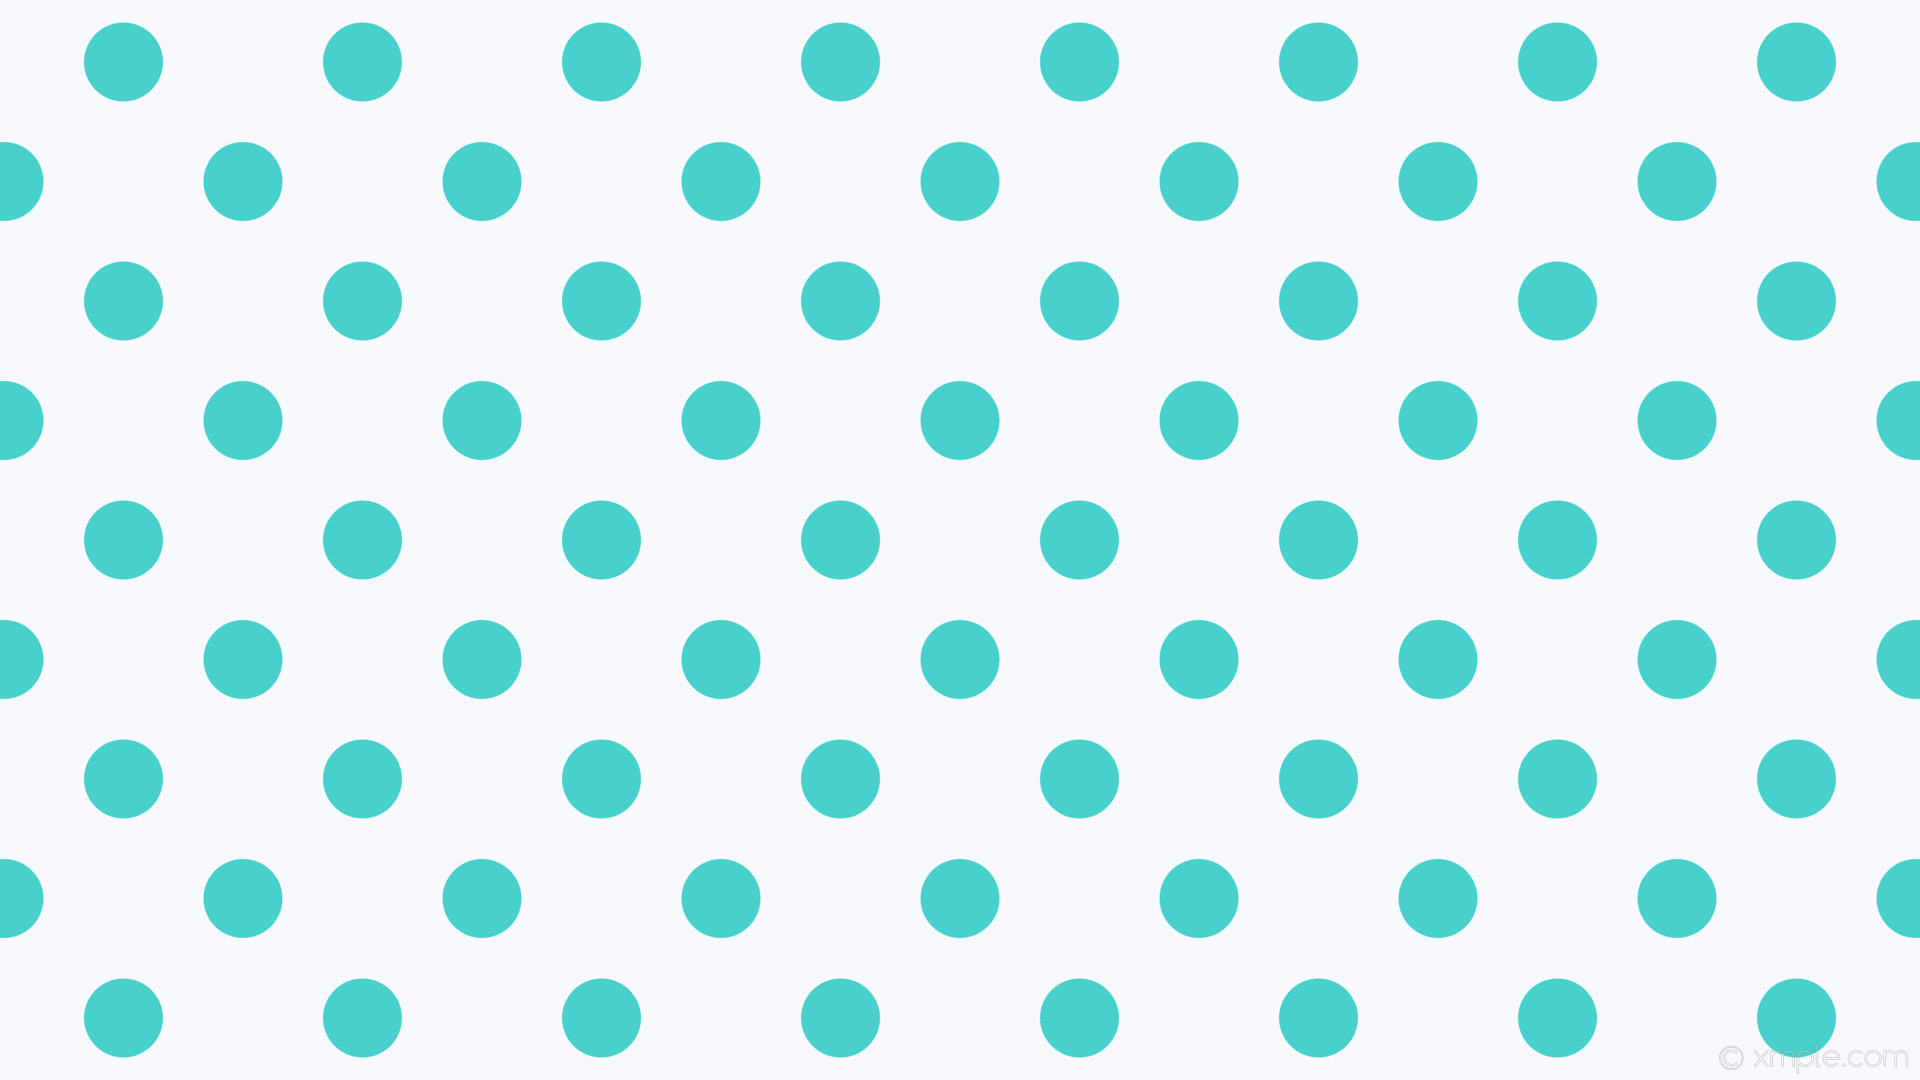 wallpaper white polka dots blue spots ghost white medium turquoise #f8f8ff  #48d1cc 315°